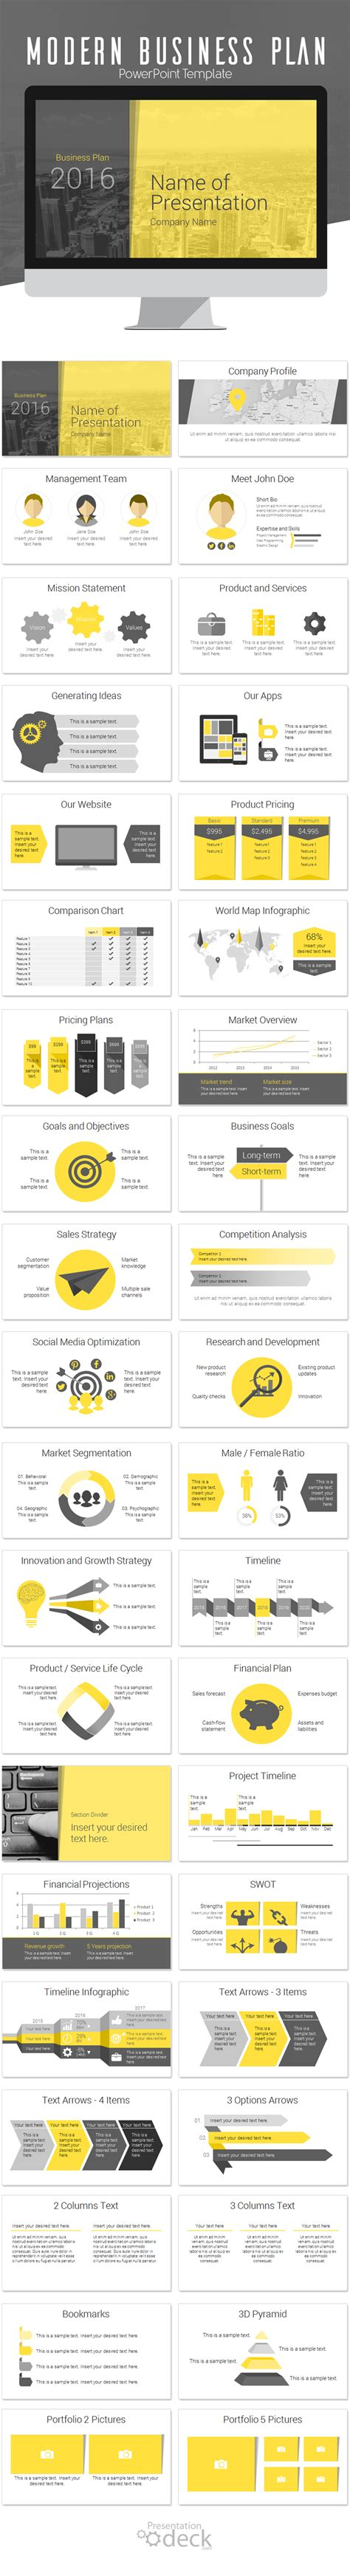 Modern Business Plan Powerpoint Template Design Och Inspiration Modern Business Plan Template